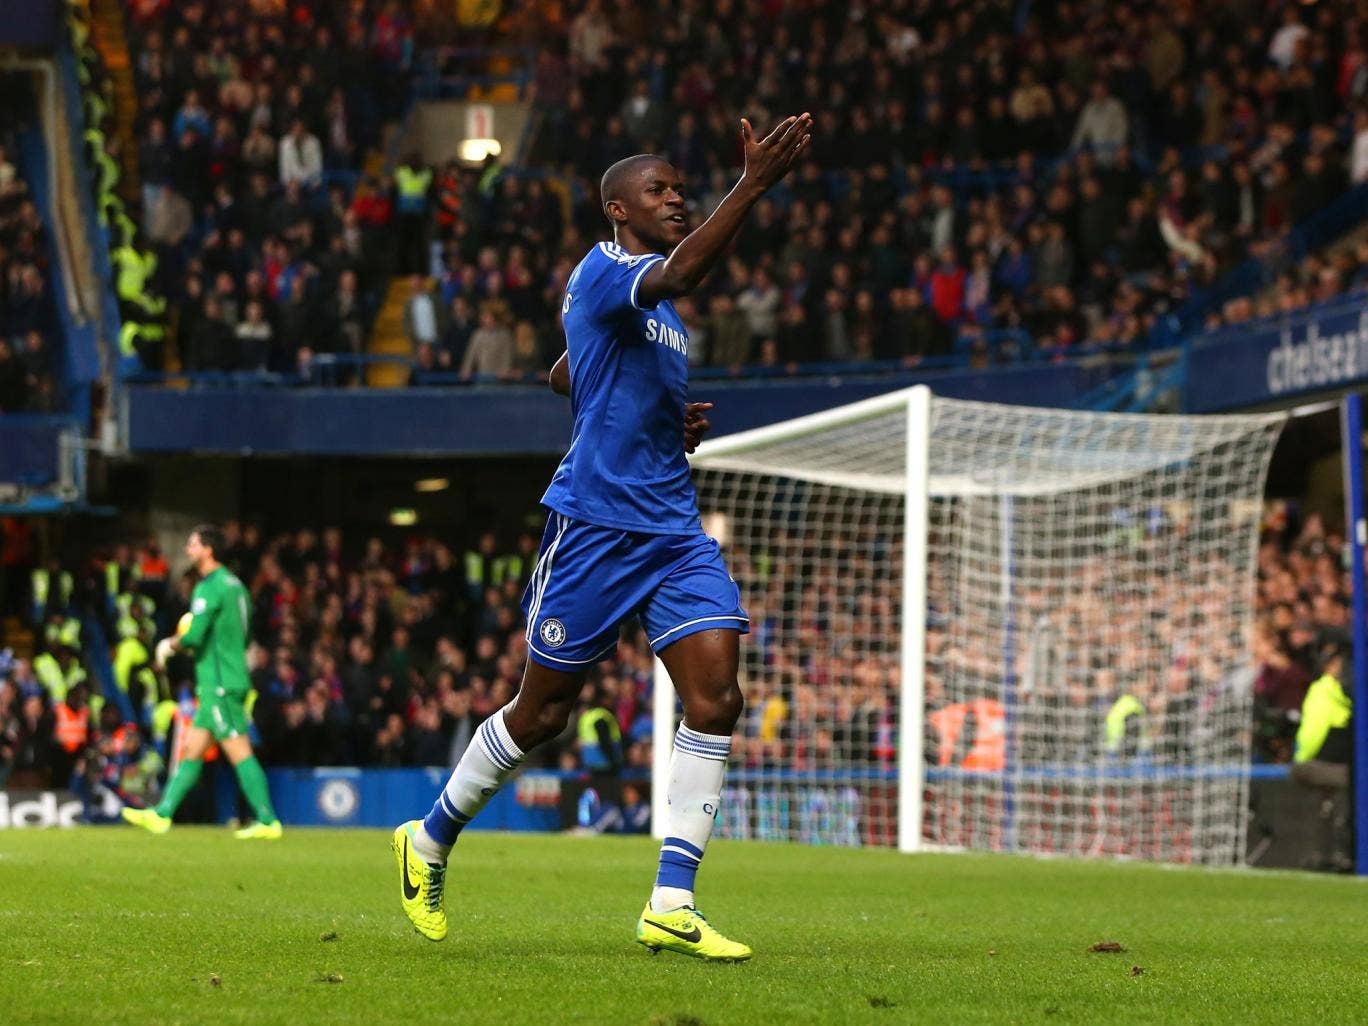 Chelsea midfielder Ramires celebrates scoring the iwnner against Crystal Palace